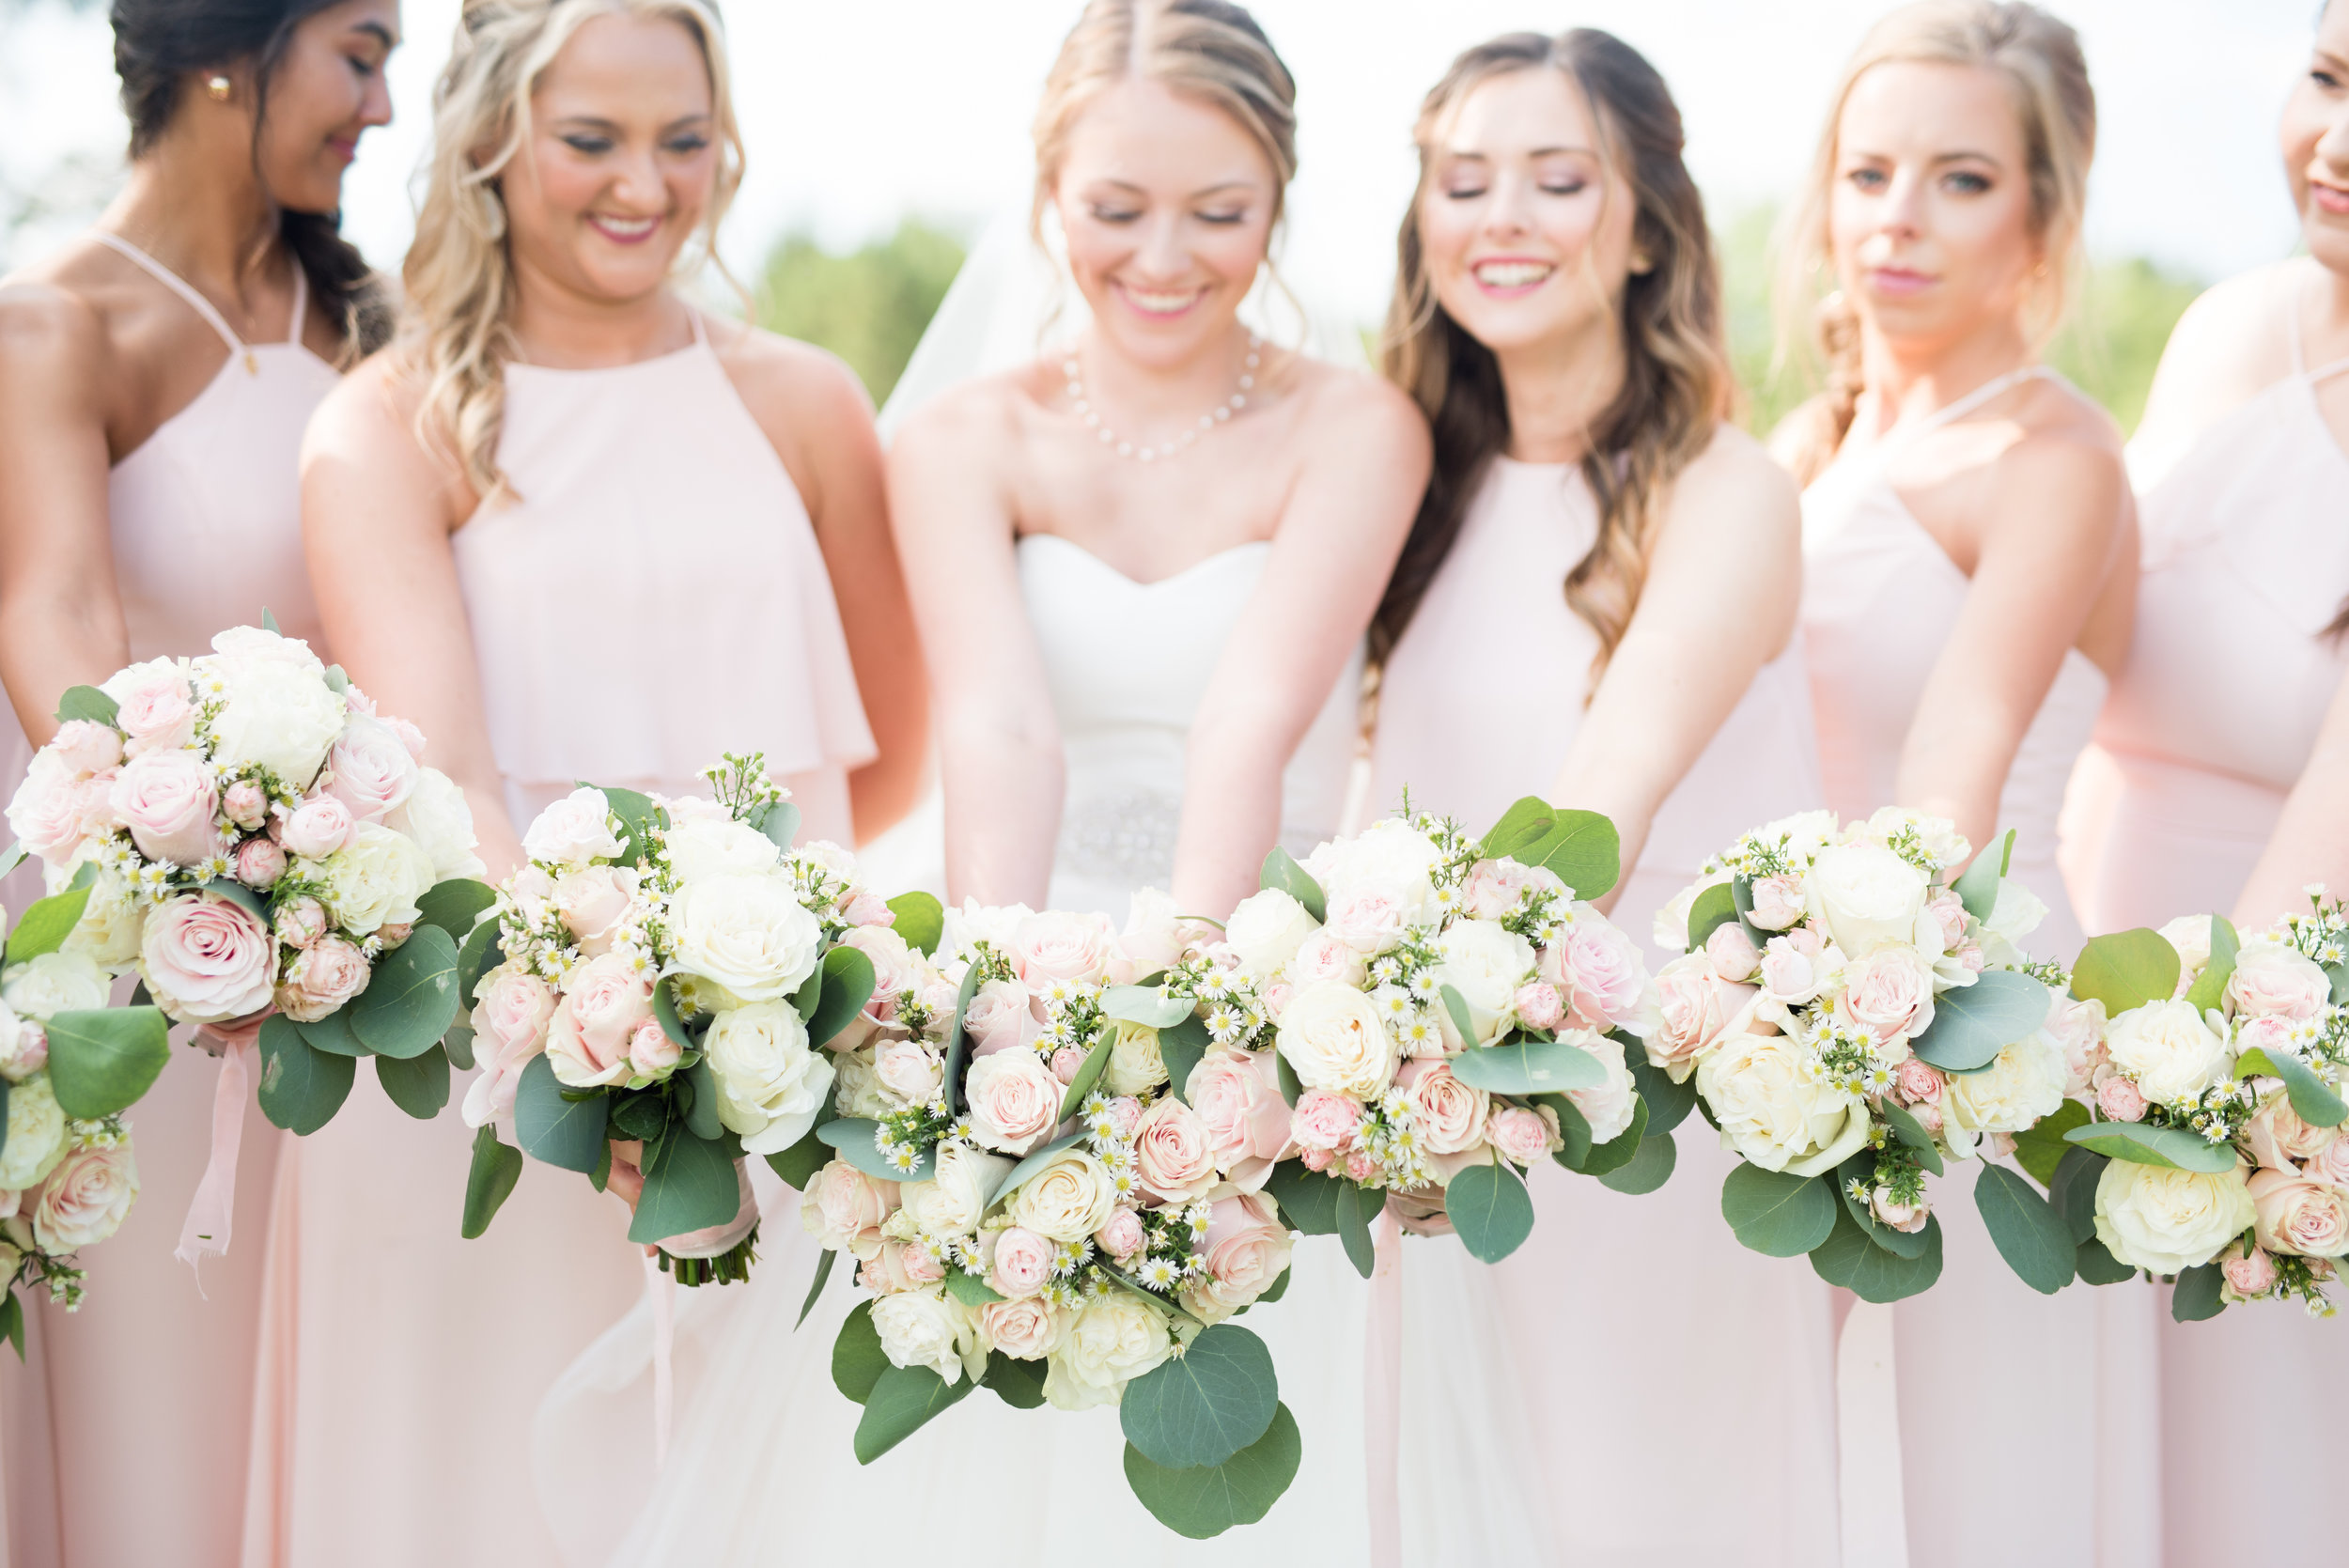 The Barn at Bridlewood wedding in Hattiesburg, Mississippi (MS) in June | Bride and bridesmaids holding wedding bouquets